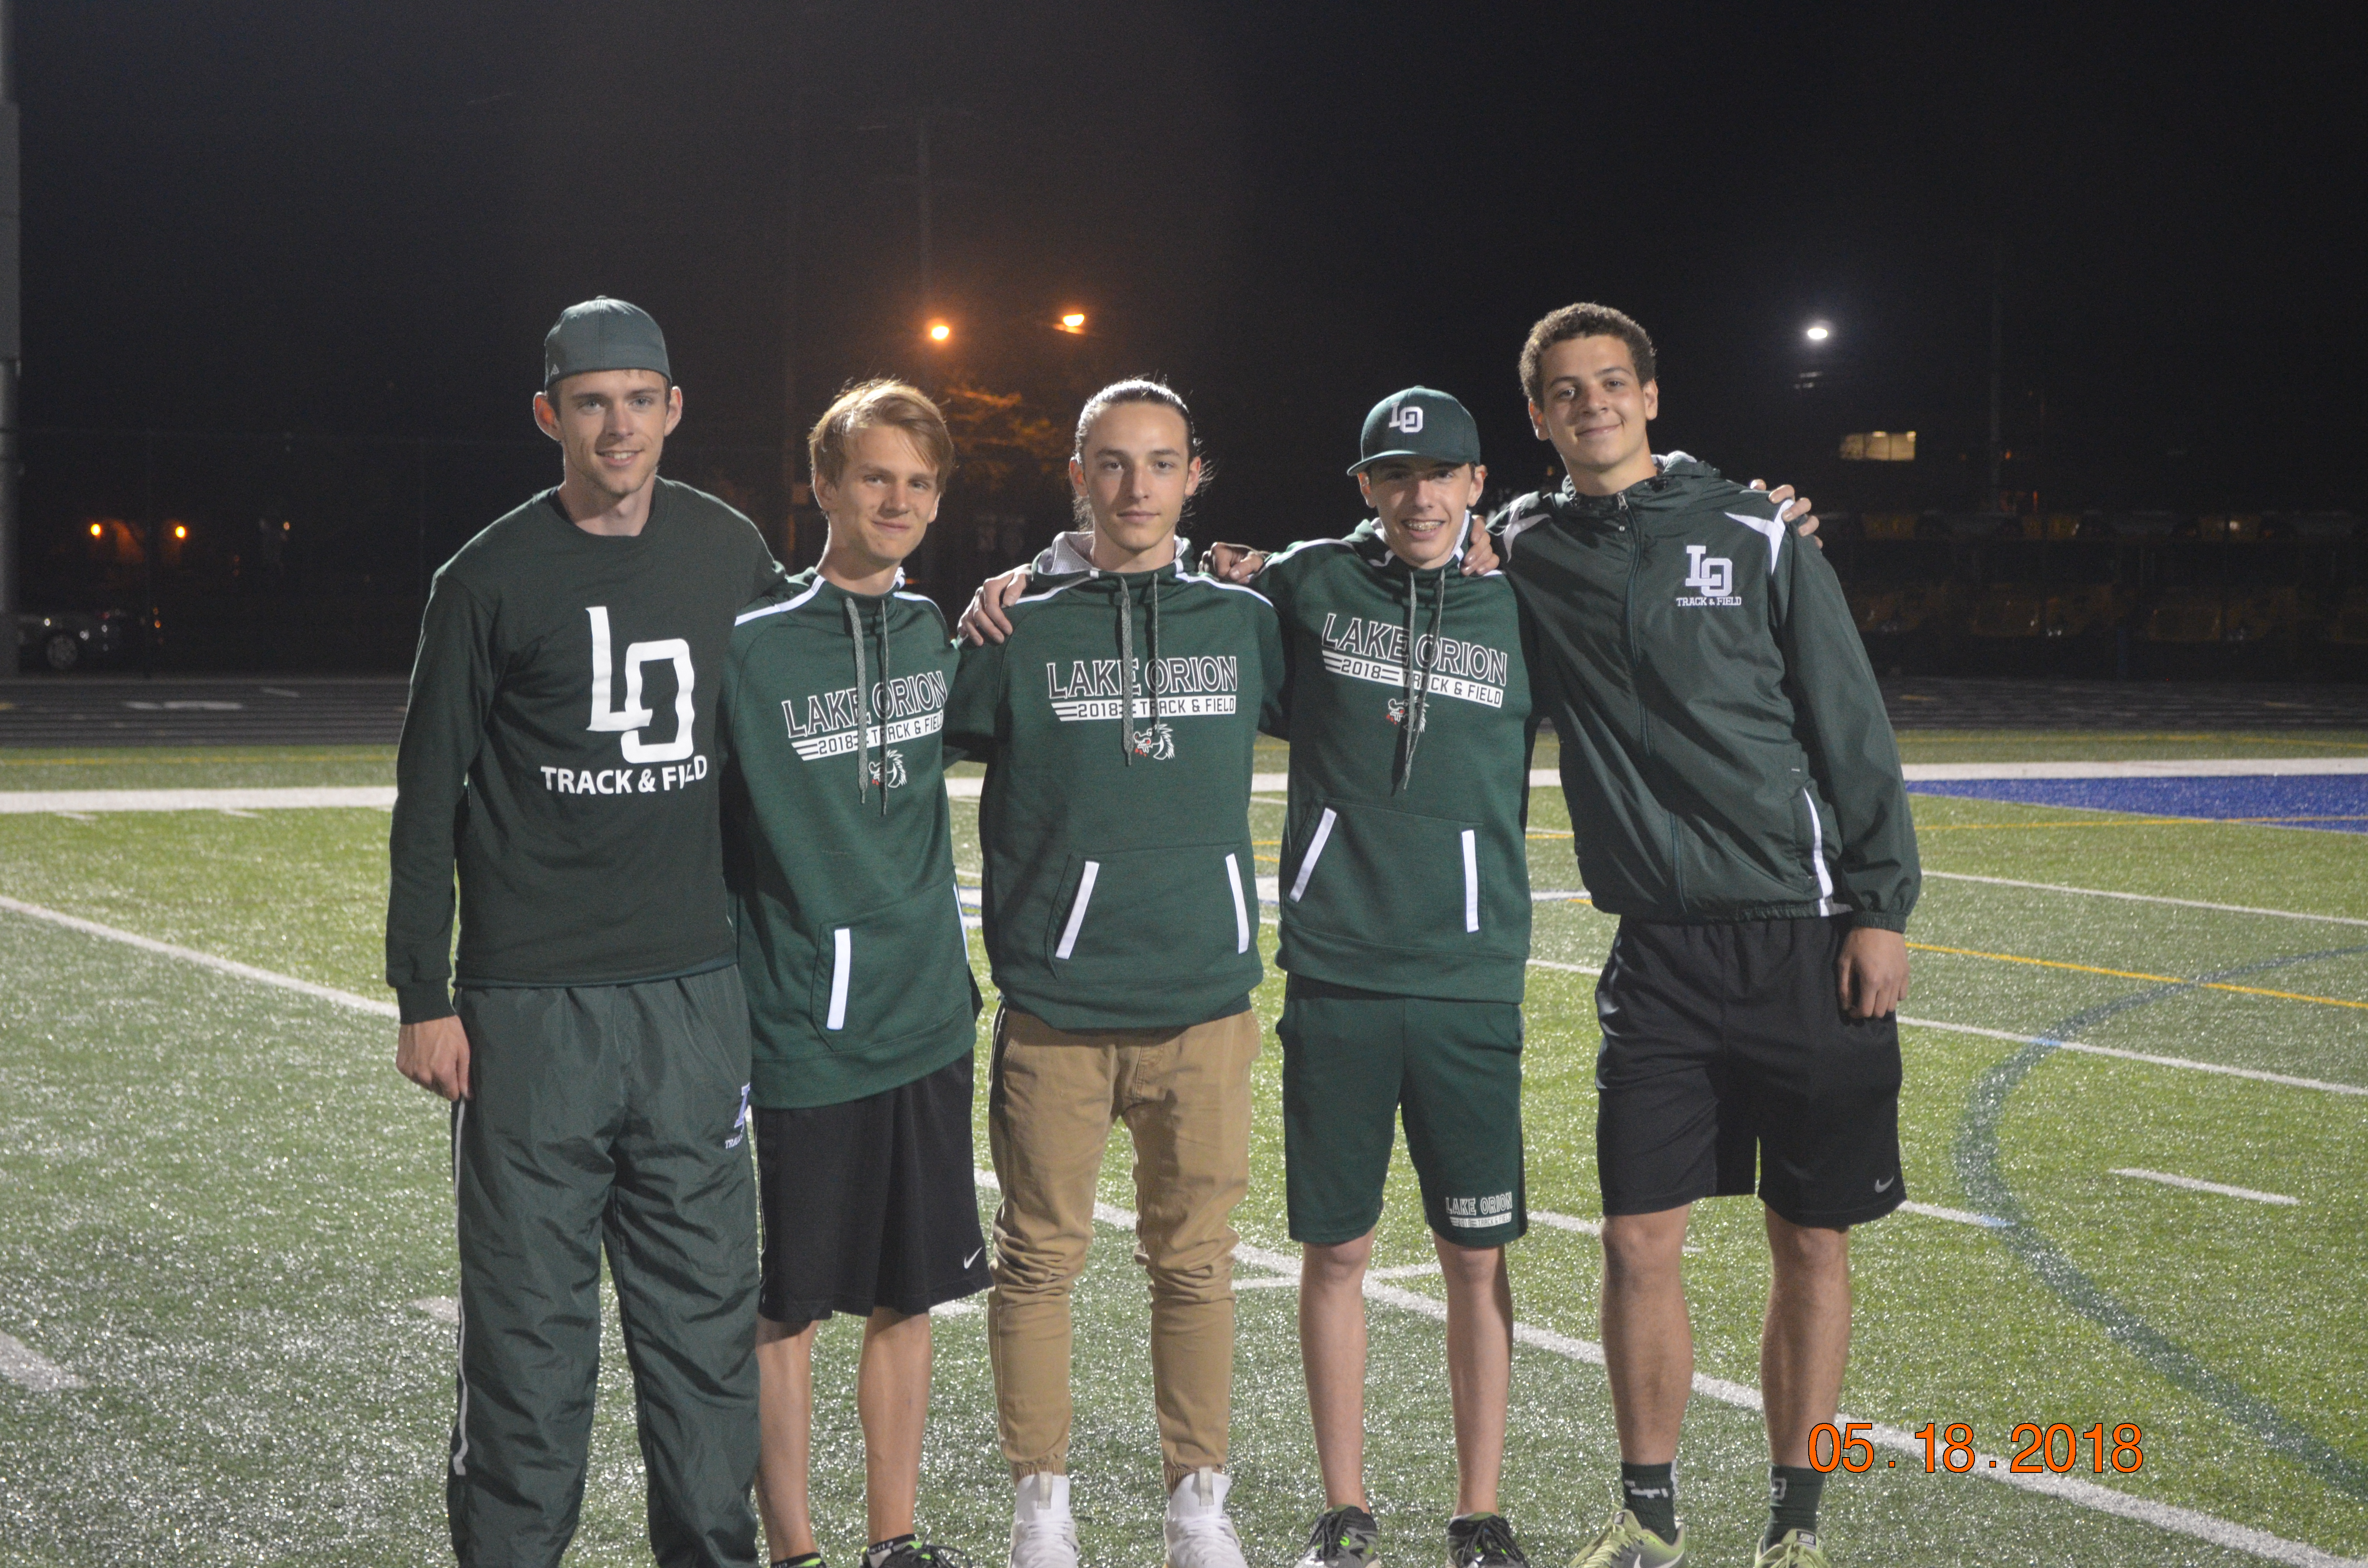 Men's Track and Field 2nd in Regionals, qualifies 5 to State Meet!